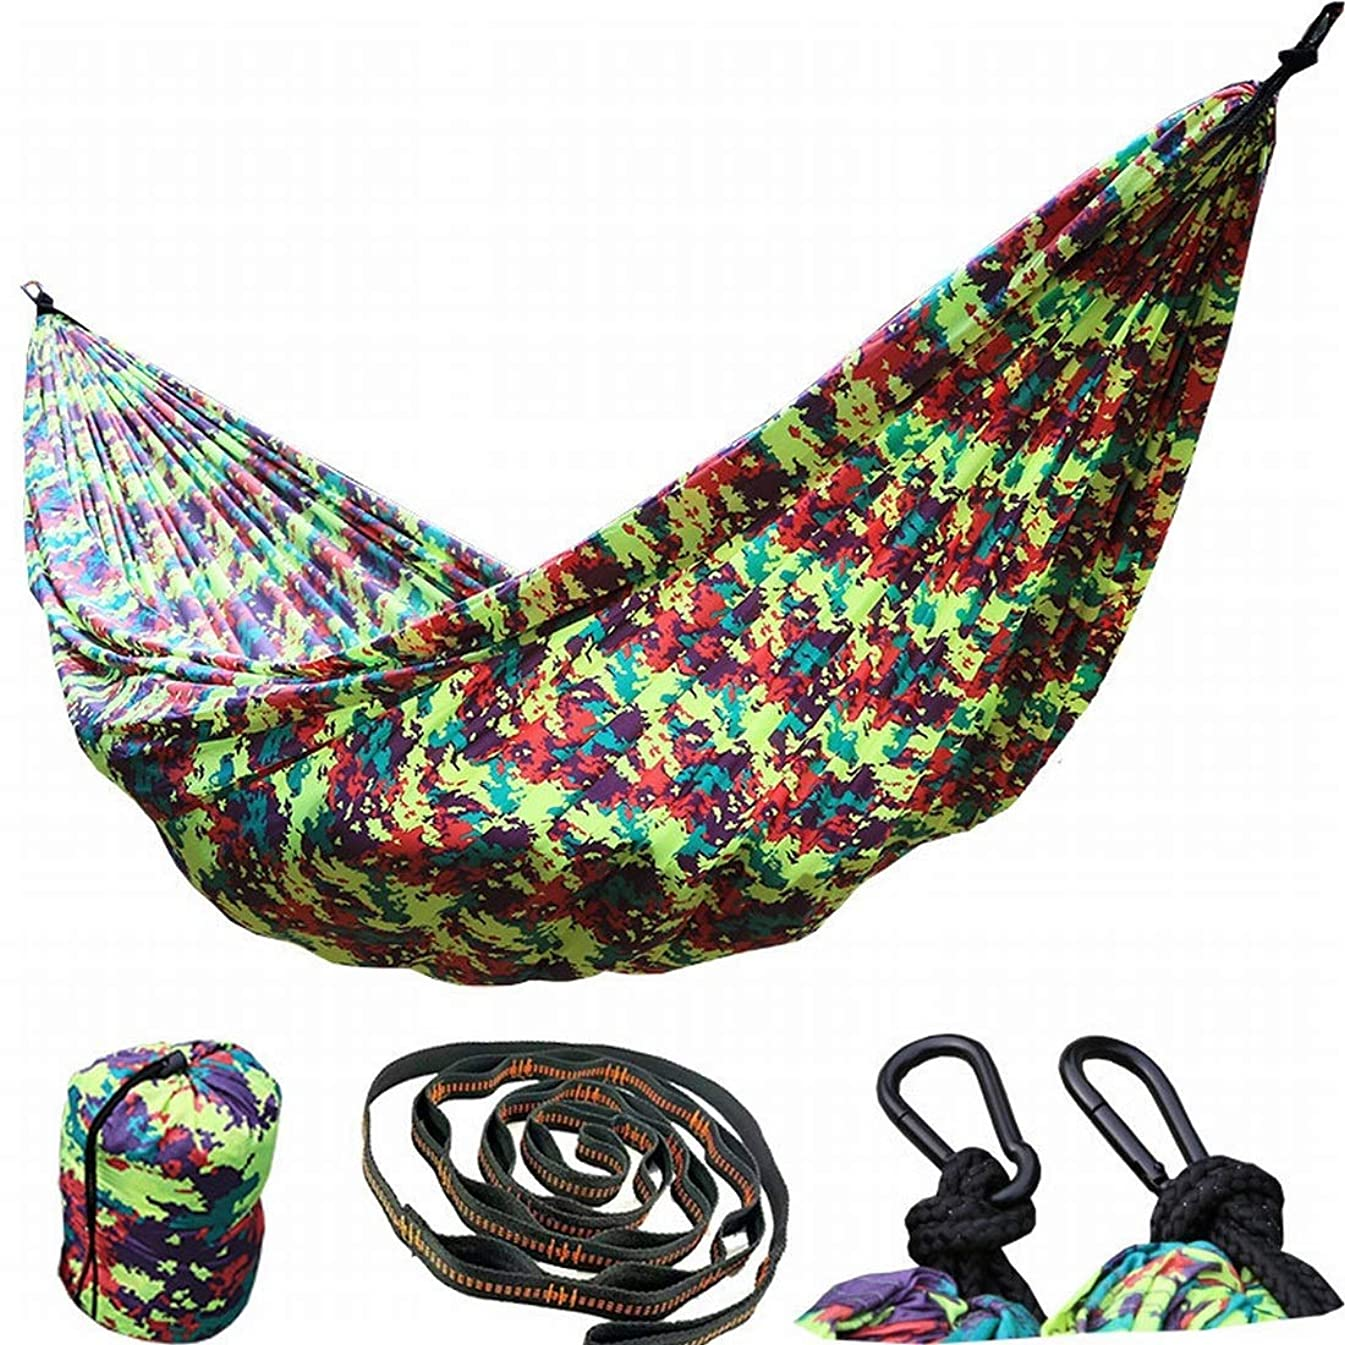 Souliyan Lengthen and Widen 3 People 300200Nylon Lightweight Parachute Cloth Hammock Camouflage Nylon Camping Hammock